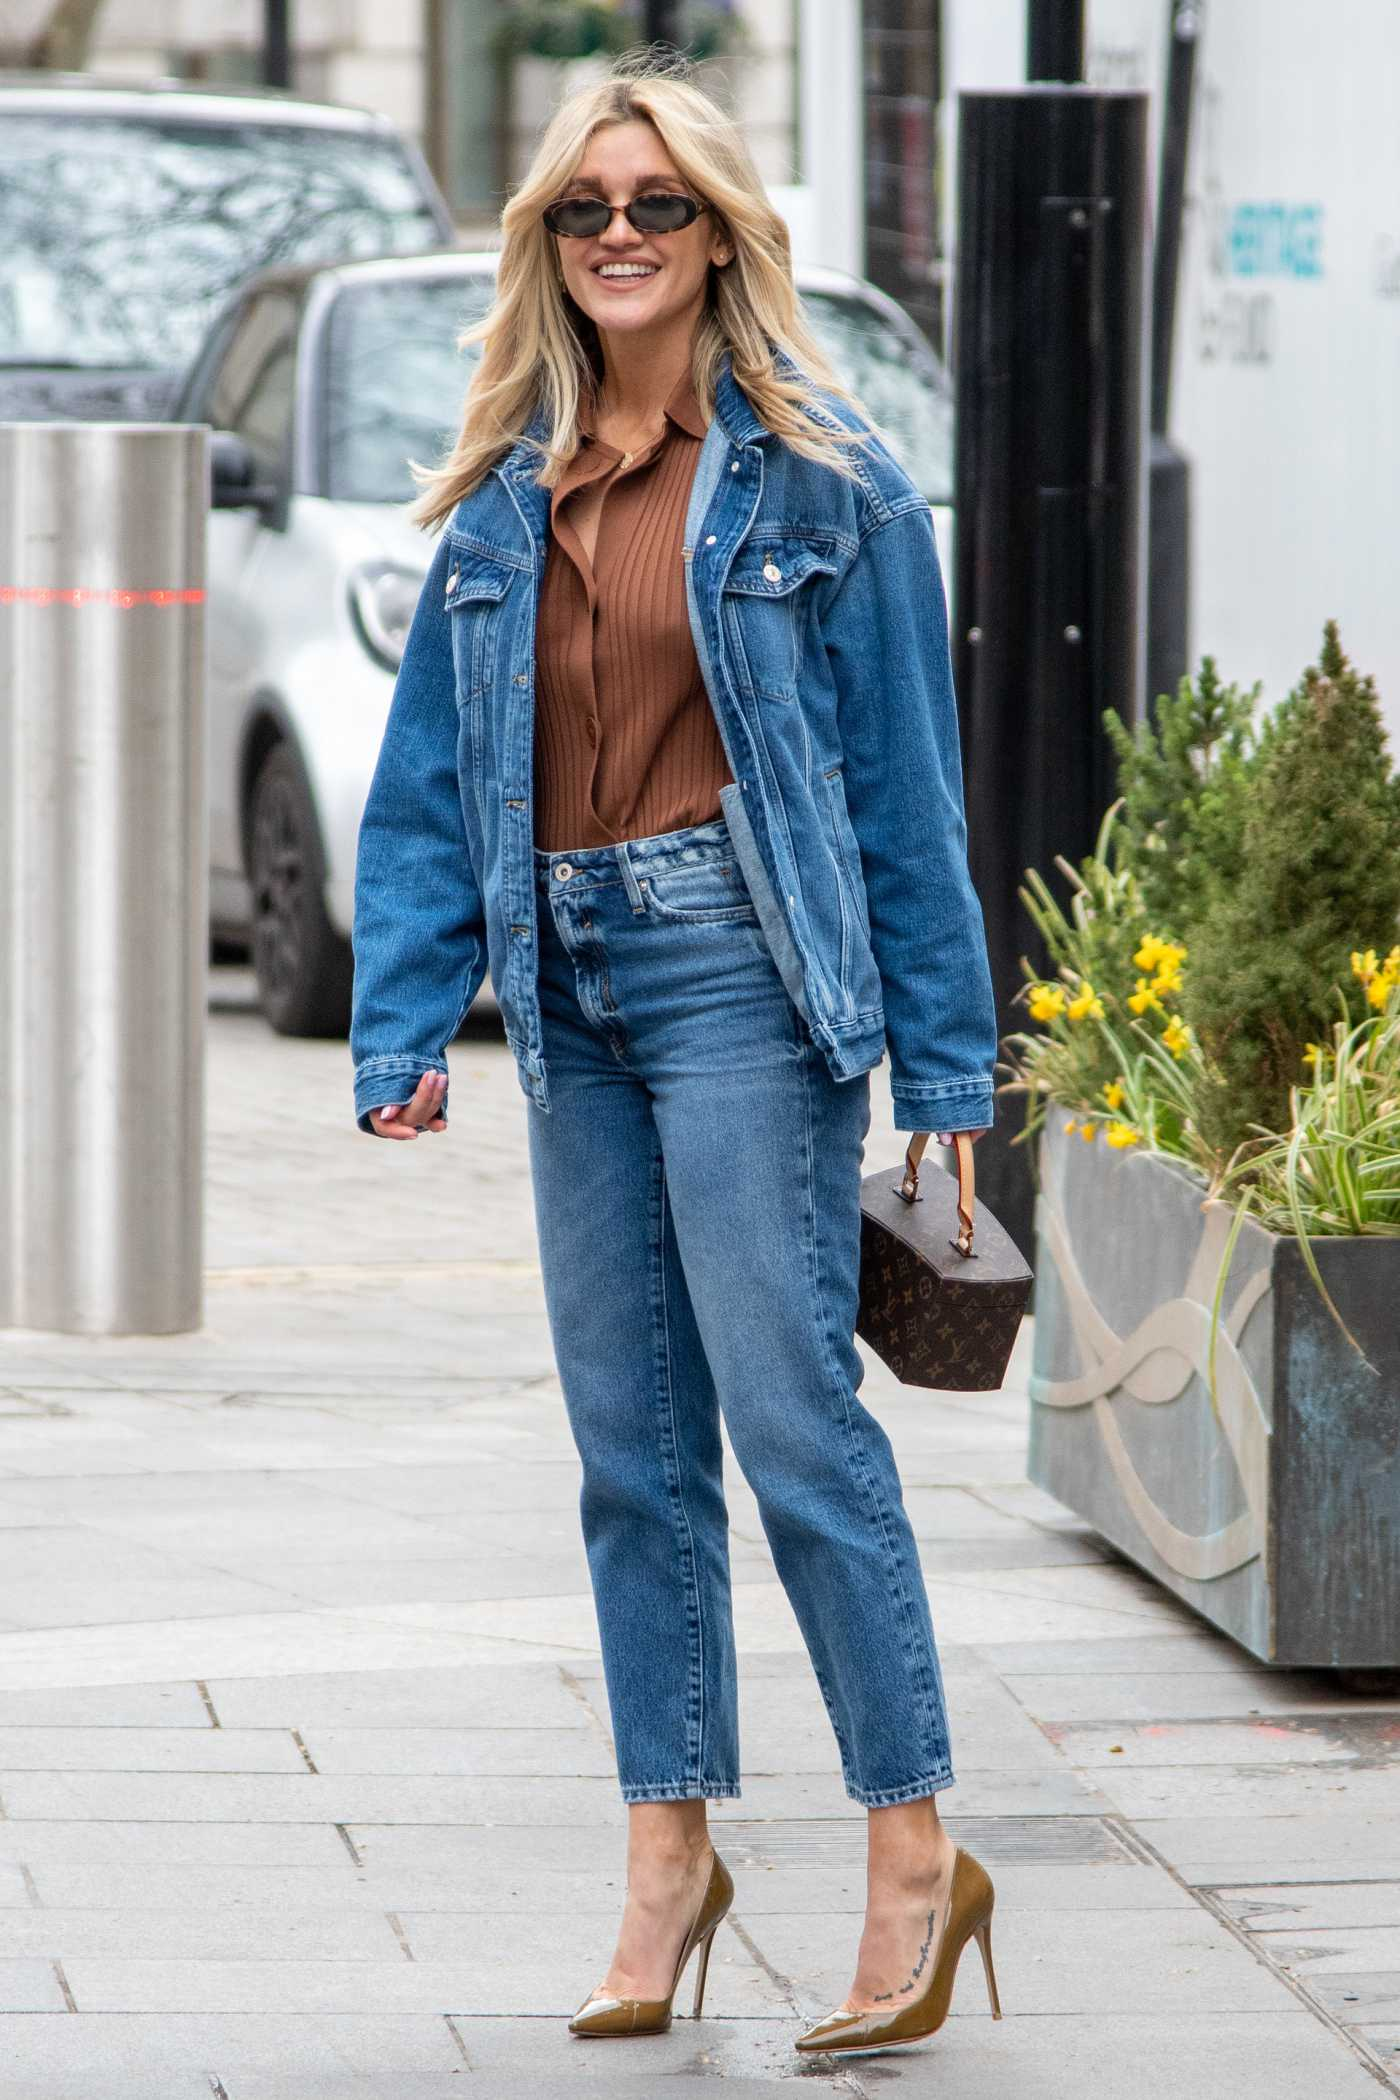 Ashley Roberts in a Blue Denim Suit Leaves the Heart Radio in London 03/26/2021